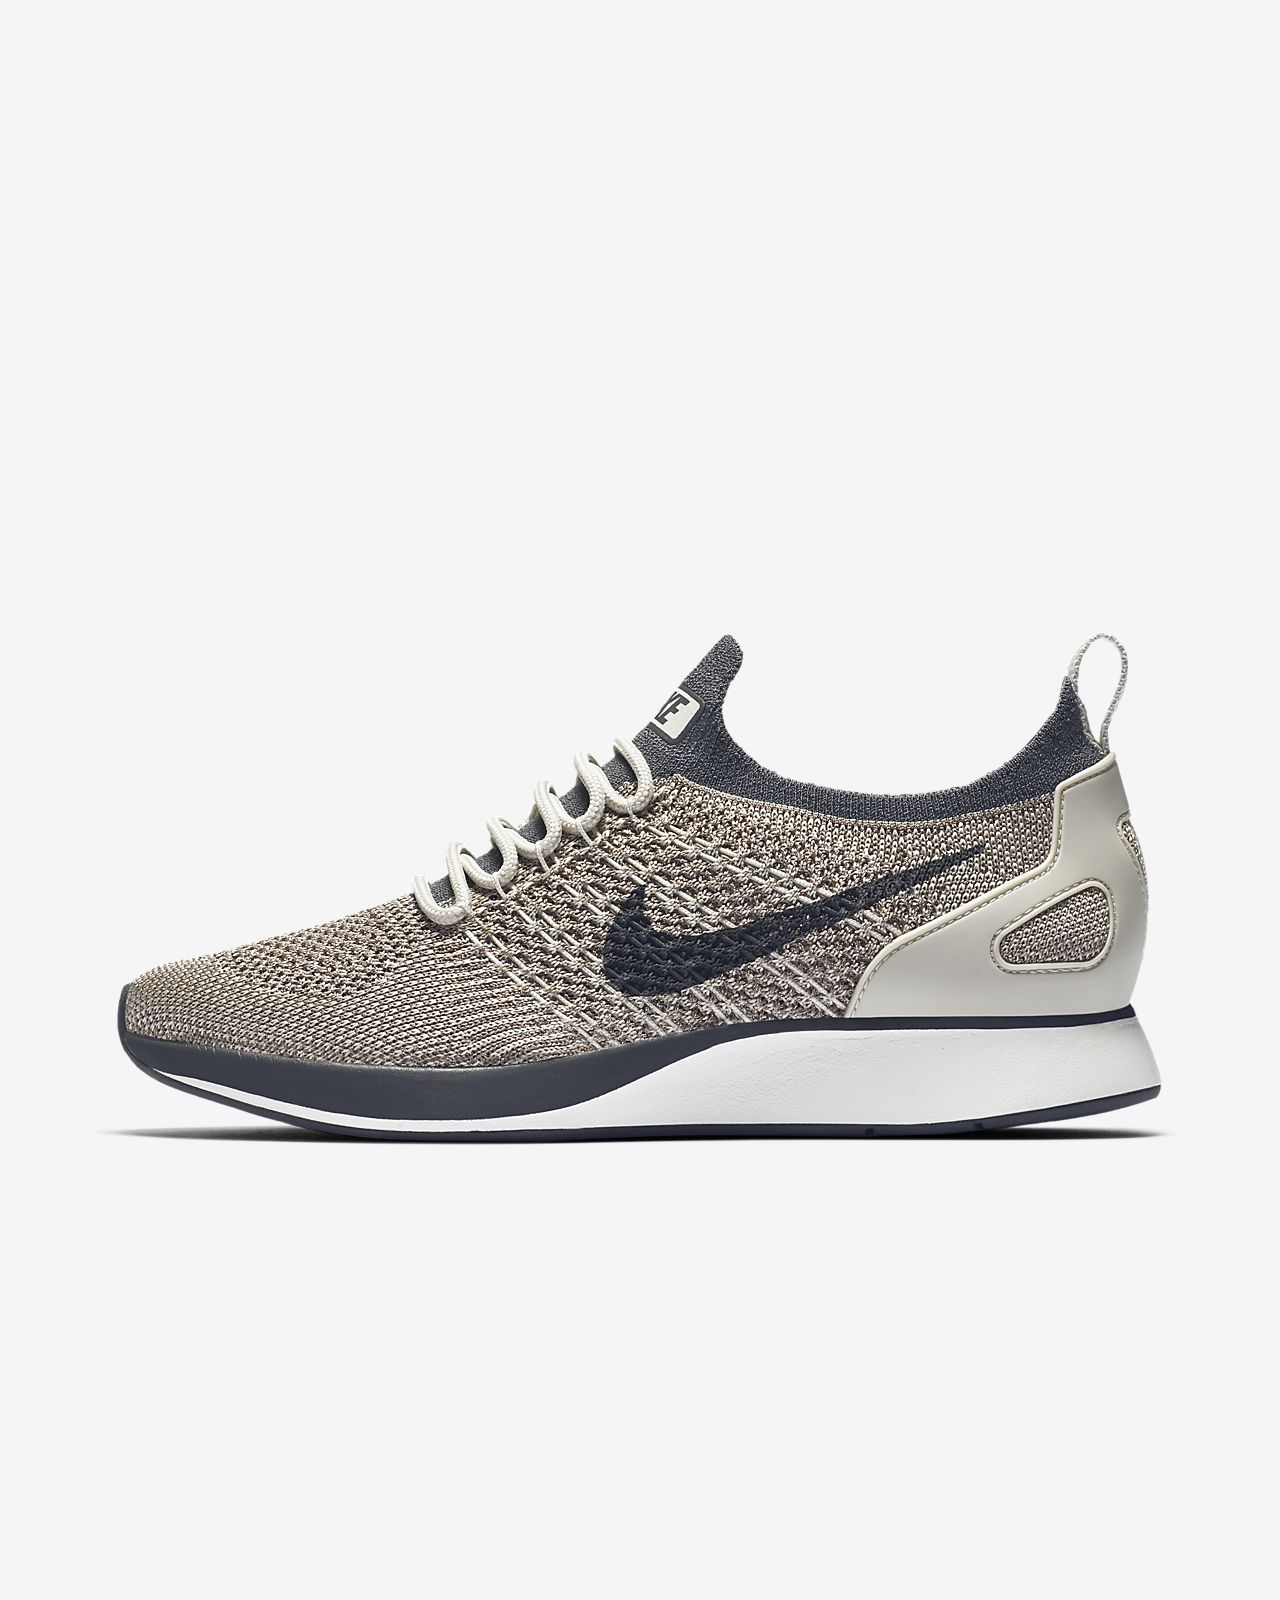 Découvrez Populaire Nike Air Zoom Mariah Flyknit Femme Chaussure Pas Cher Royer3601908